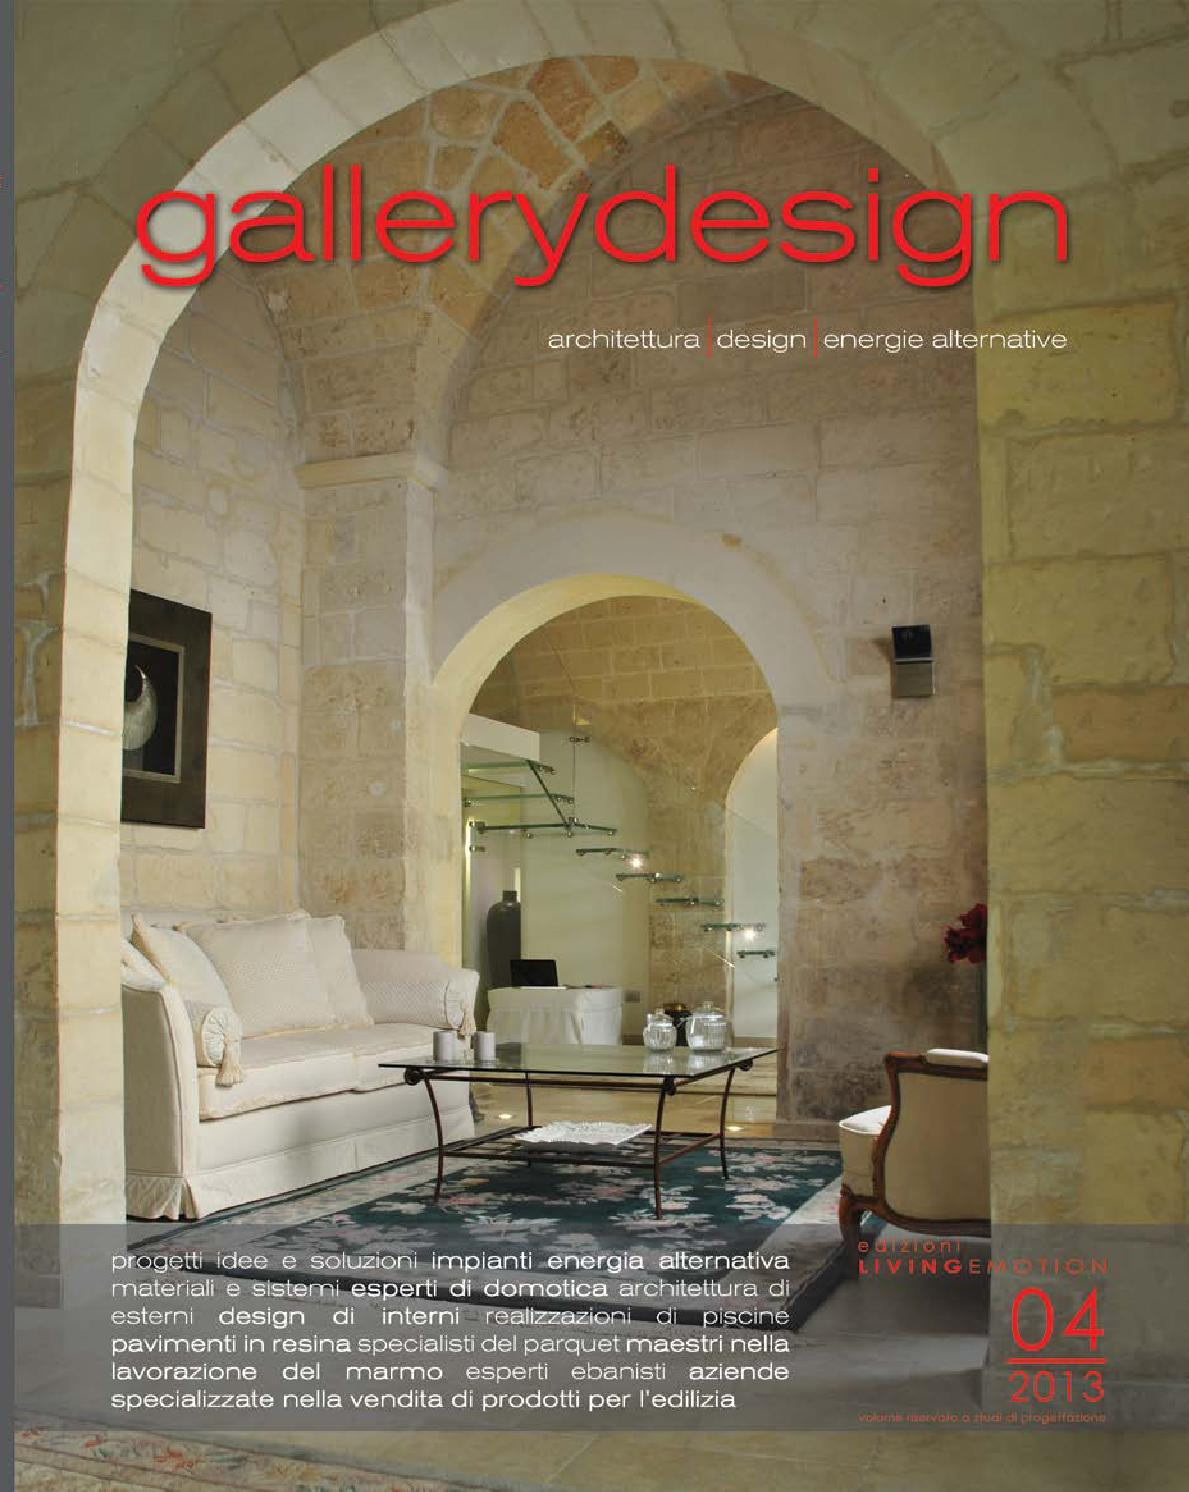 Rivista gallery design 2013 by rivista gallery design issuu for Arredamenti francavilla fontana